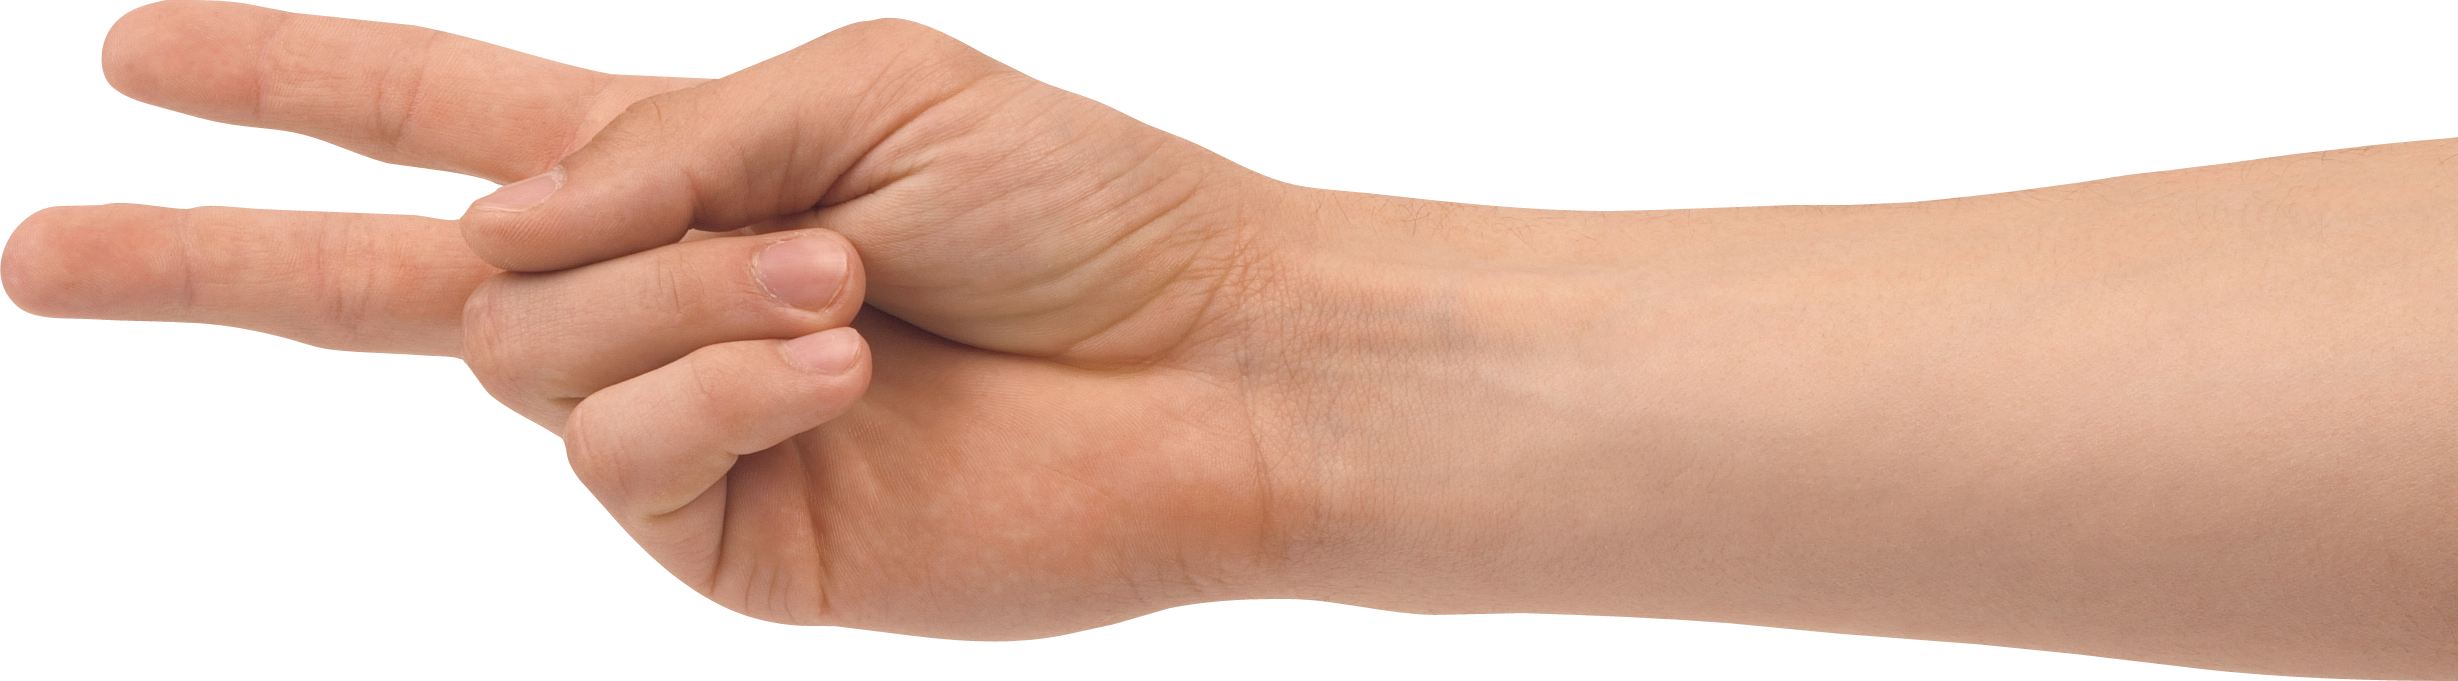 Fingers PNG - 5349